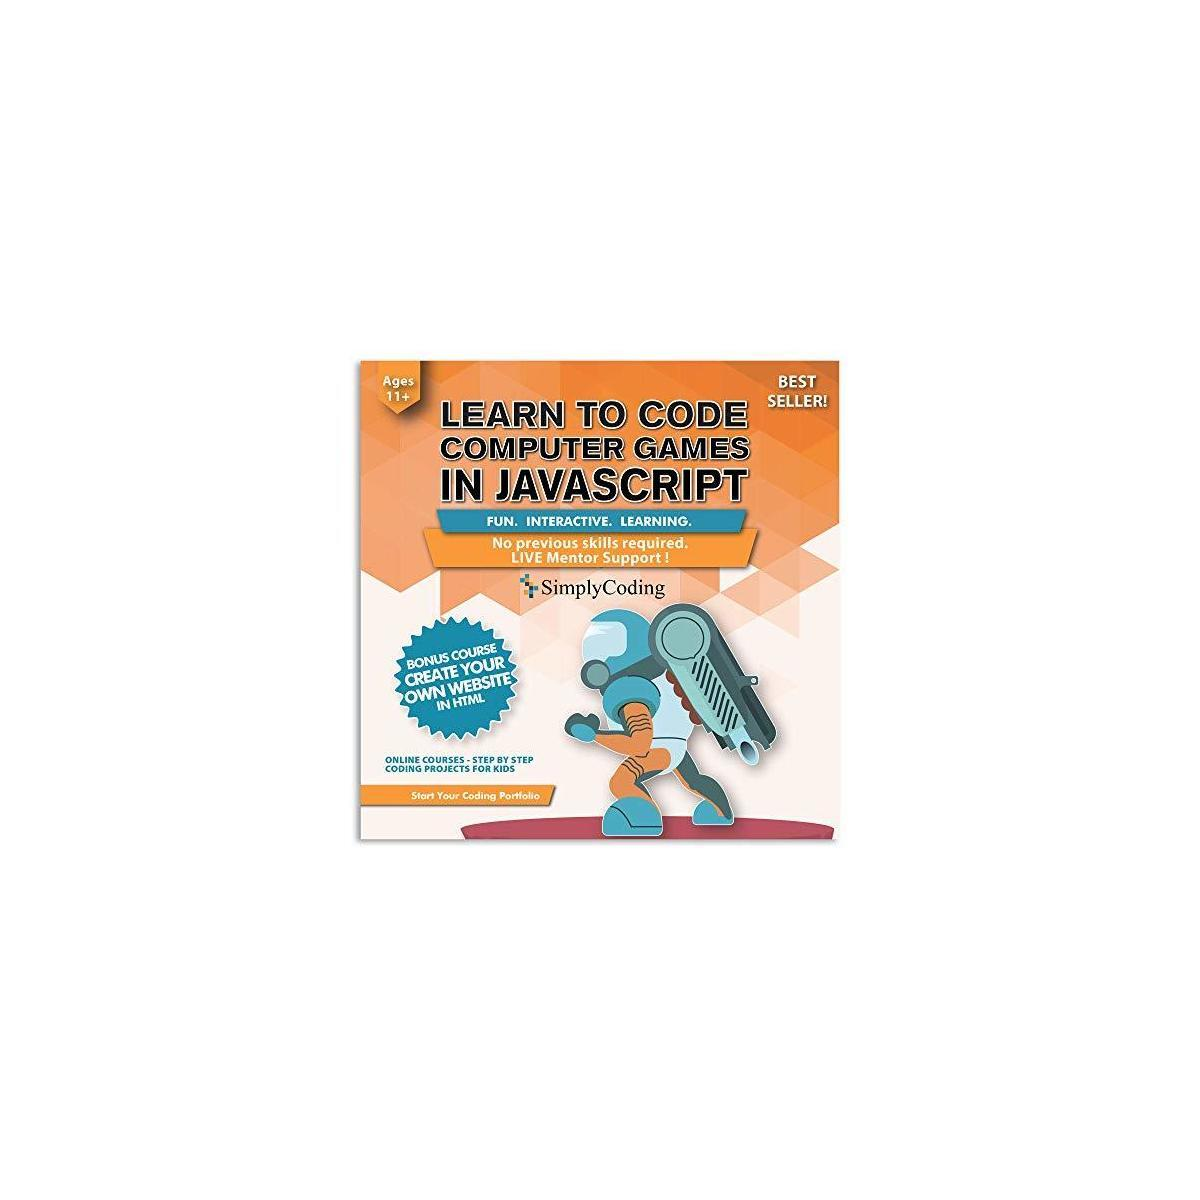 Coding for Kids: Learn to Code Javascript - Video Game Design Coding Software - Computer Programming for Kids, Ages 11-18, (PC, Mac, Chromebook Compatible)